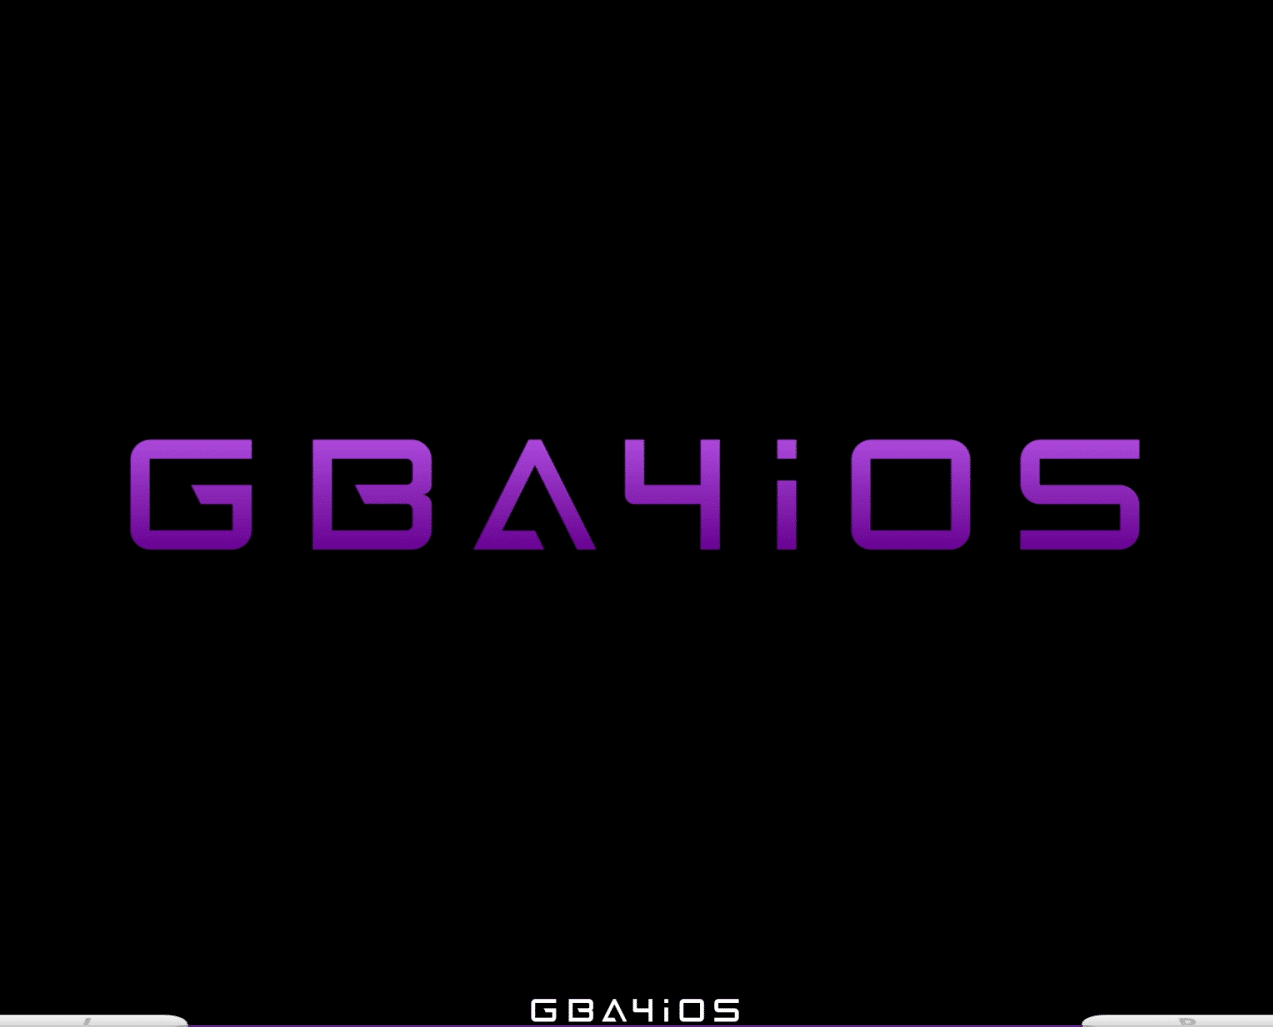 GBA4iOS Download: Install on iPhone/iPad without Jailbreak